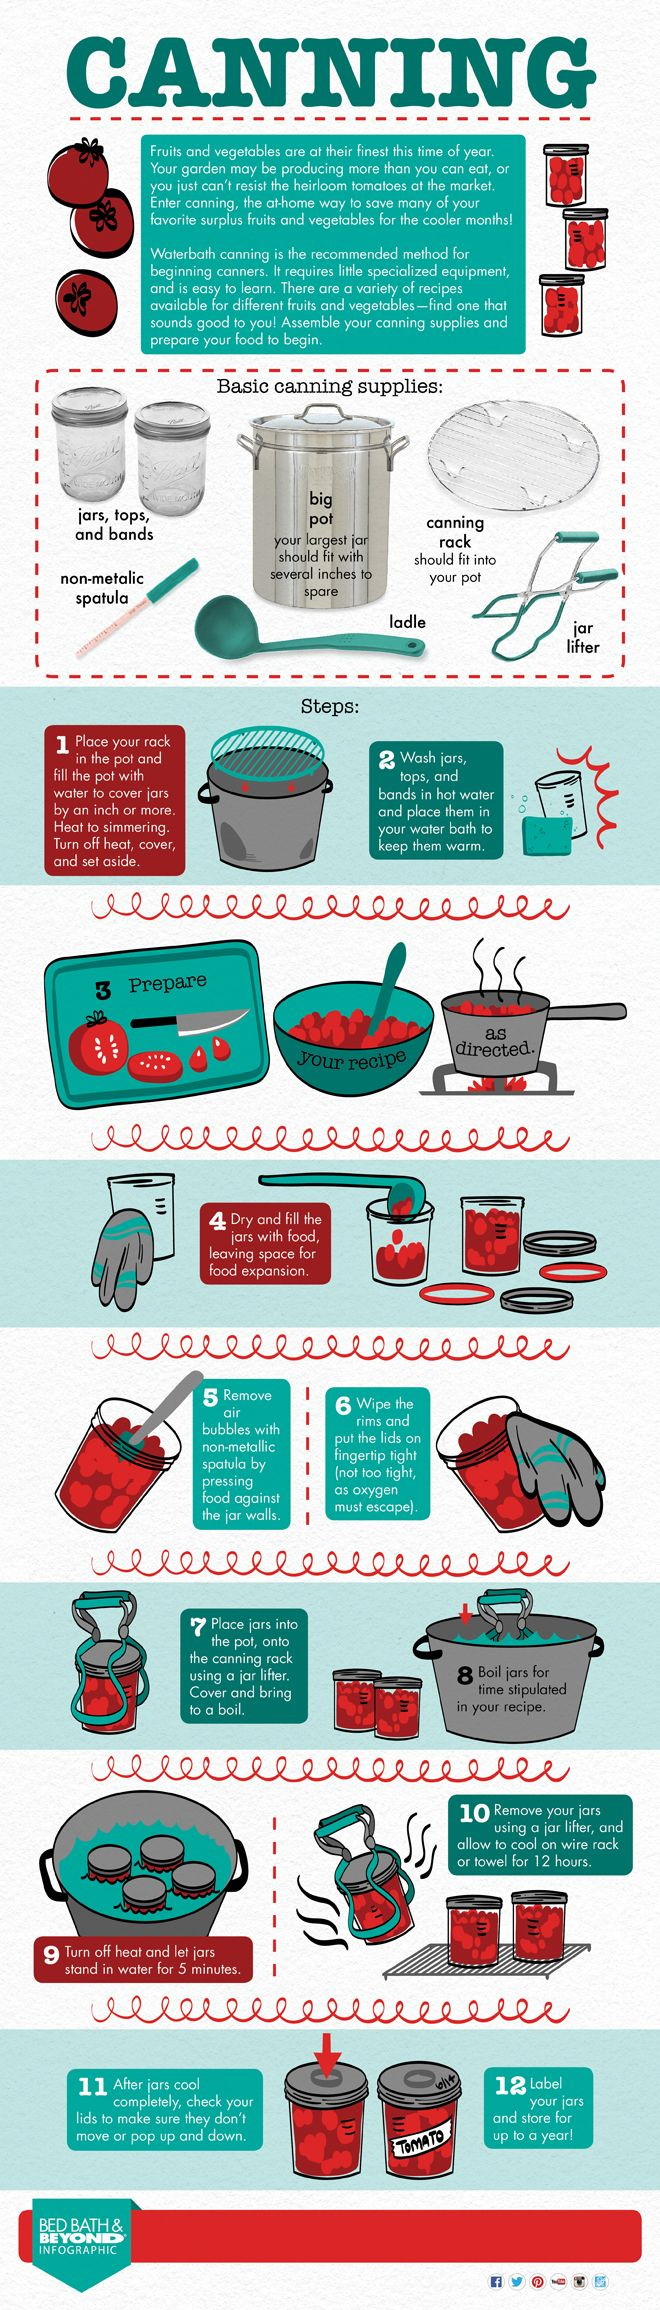 Canning Infographic - Above & BeyondAbove & Beyond | Above & Beyond, the blog from Bed Bath & Beyond, features cooking, recipes, food, entertaining, gift ideas, home decor, organizing advice, and more ideas and inspiration!